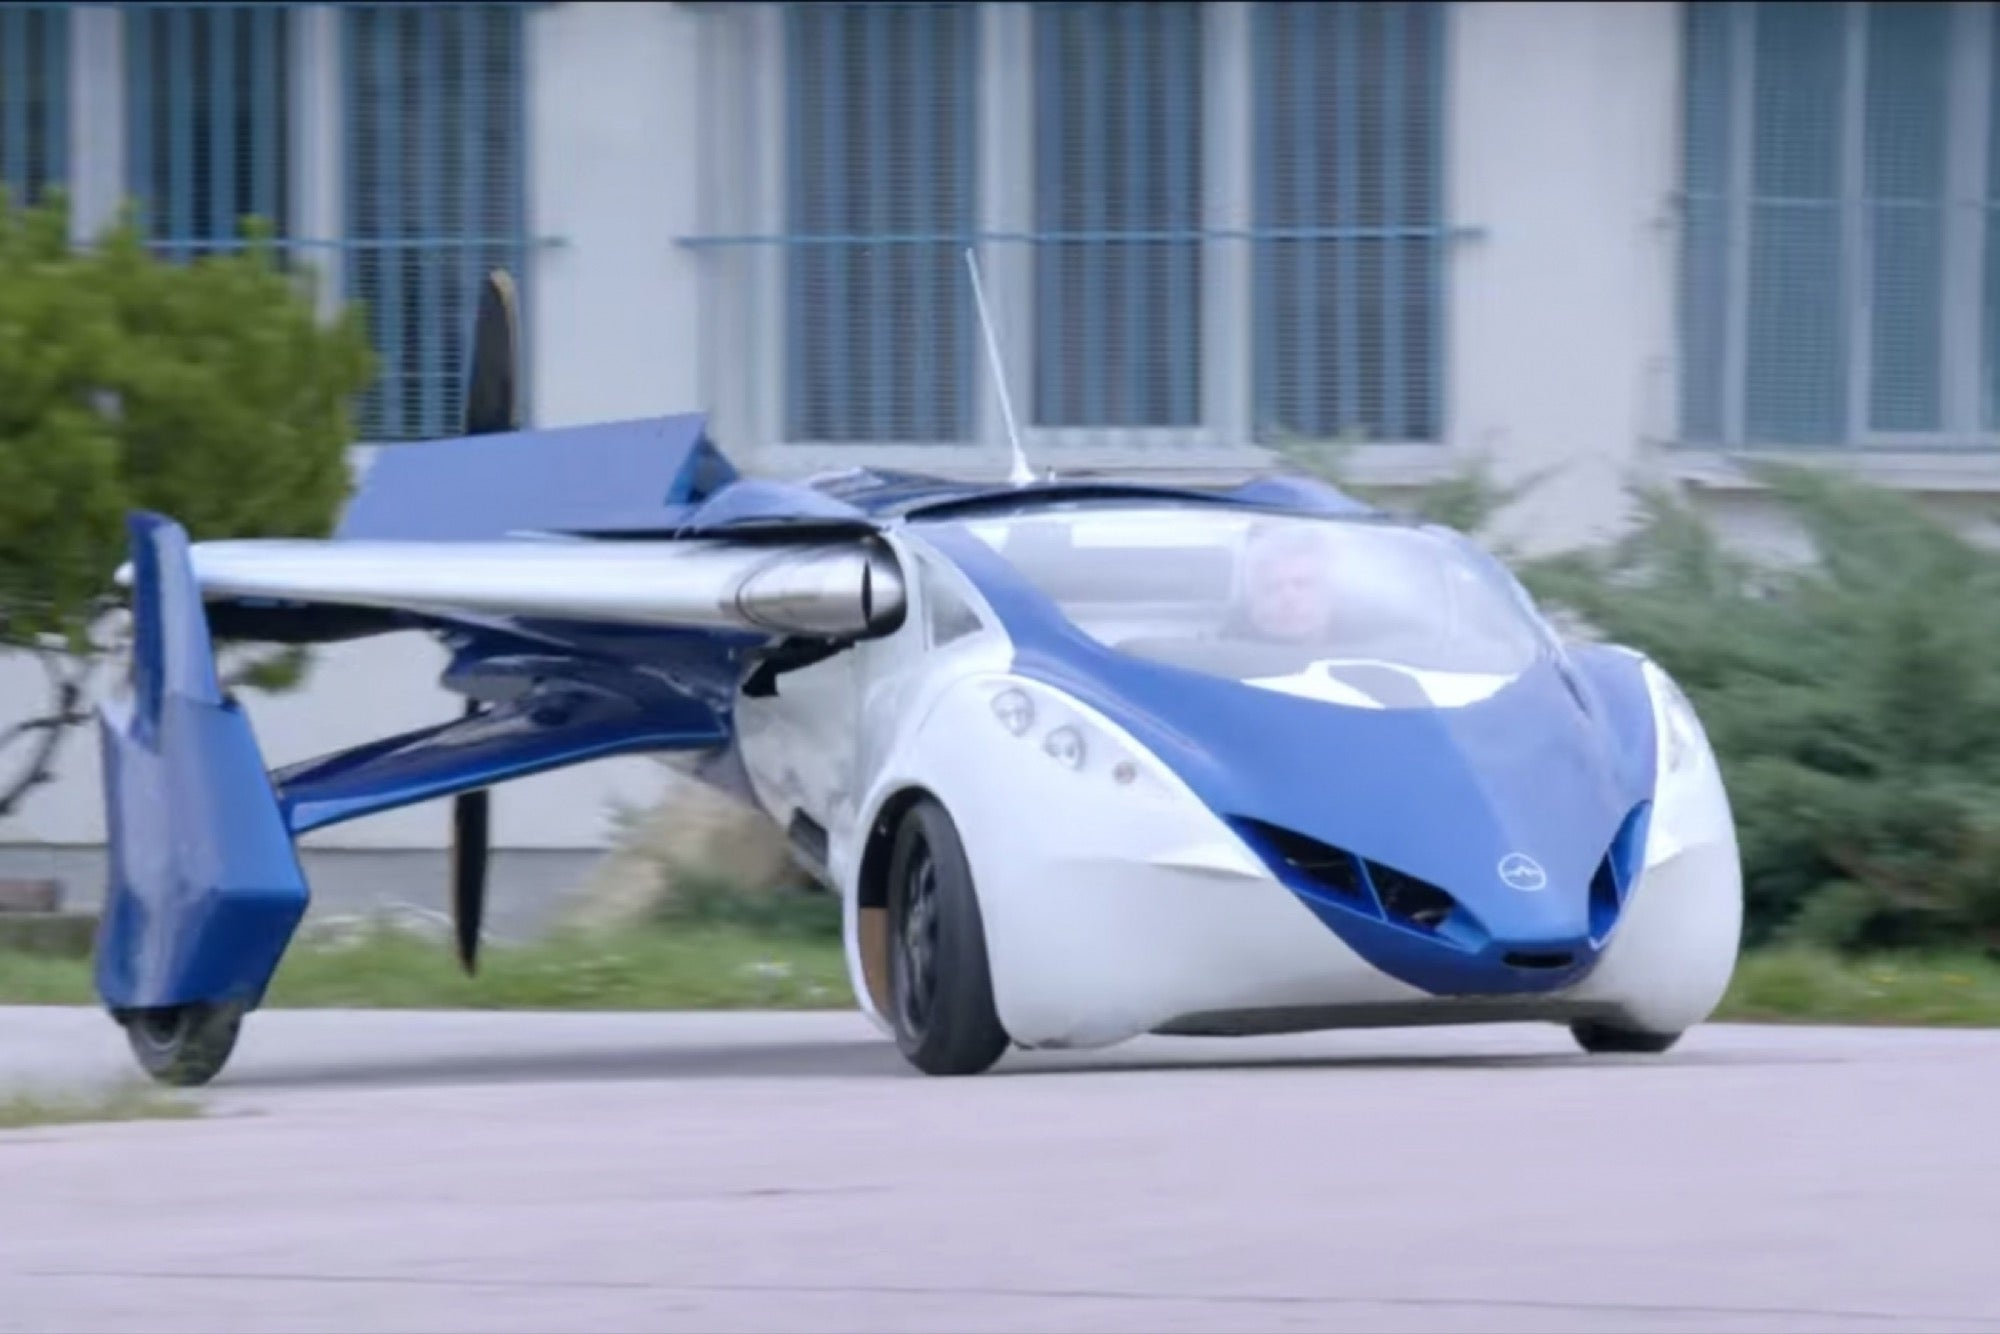 At SXSW The Flying Car Could e as Early as 2017